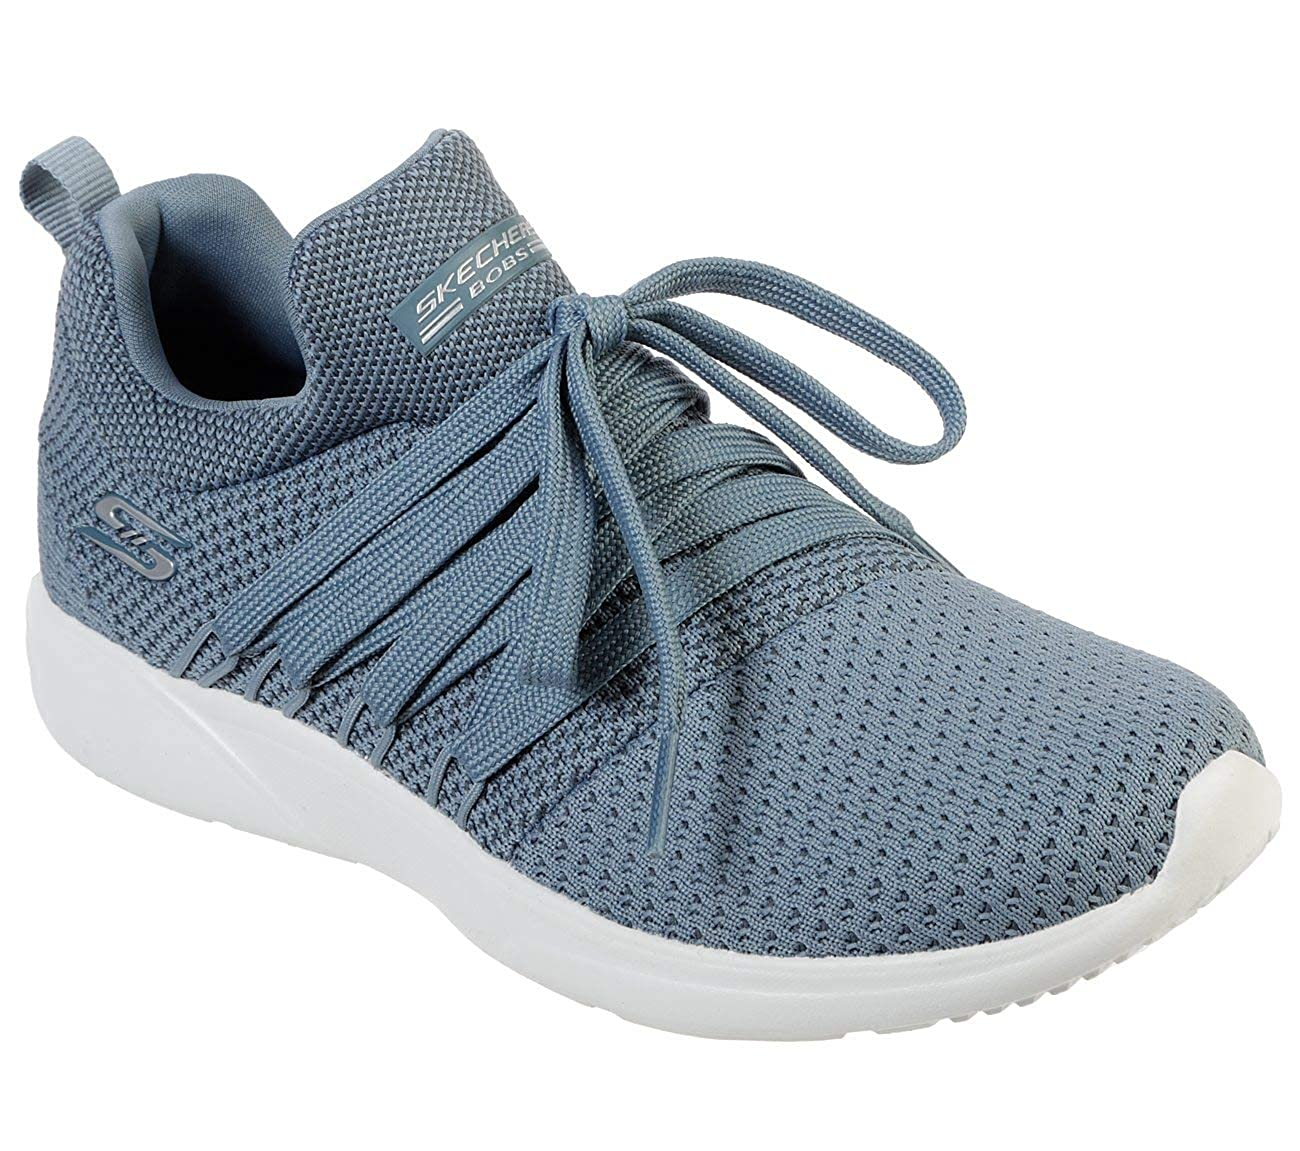 Slate Skechers Womens Bobs Sparrow Sneaker Club Textile Trainers